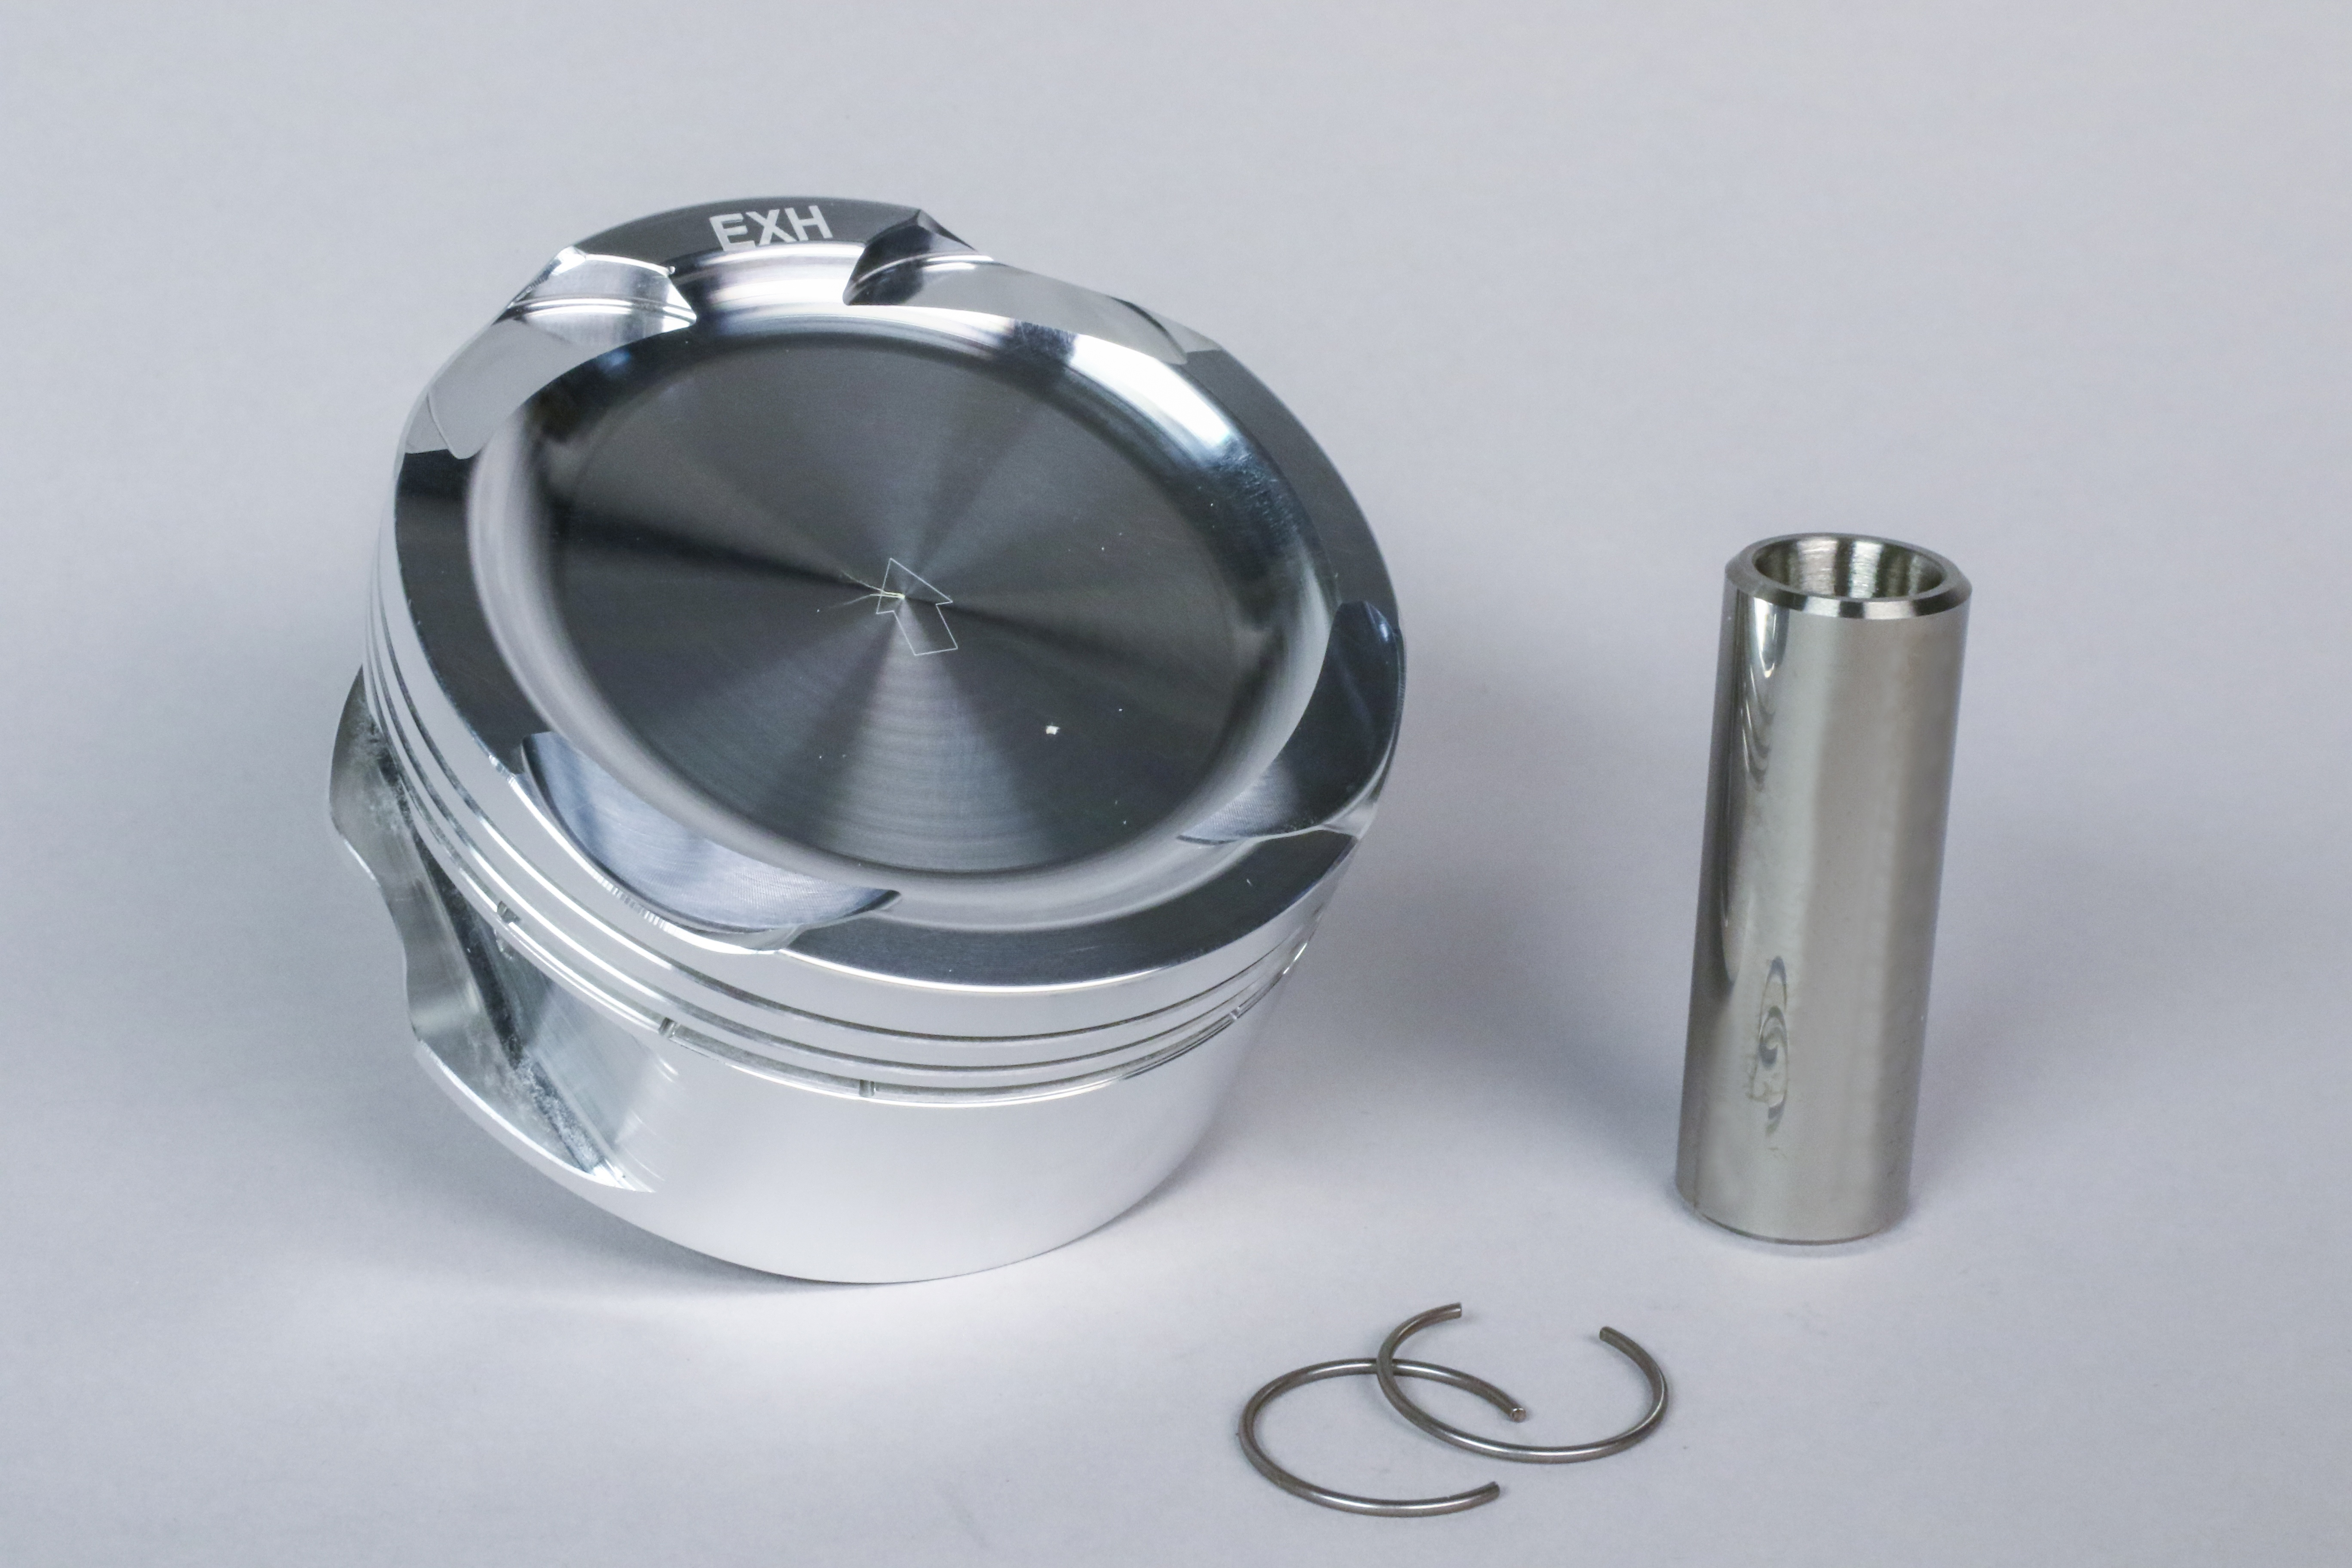 From Café Racers to Turbo Bikes: Pistons to Rebuild Your